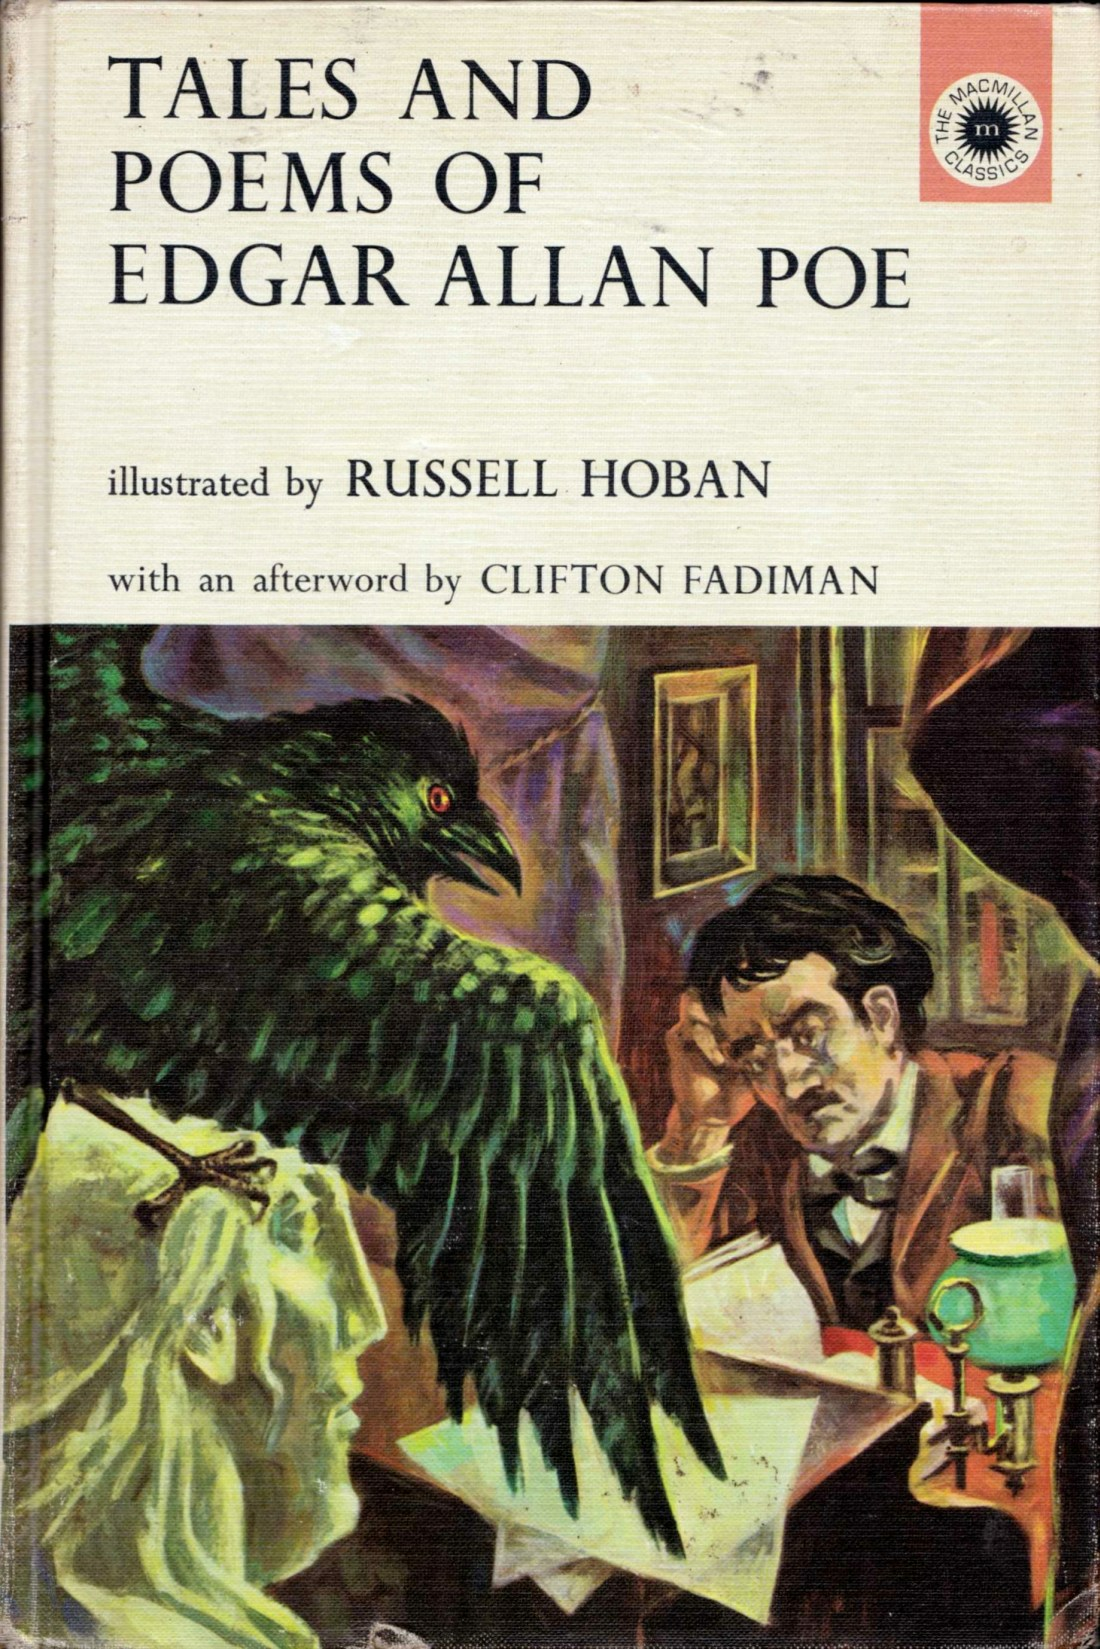 edgar allan poe and james russell